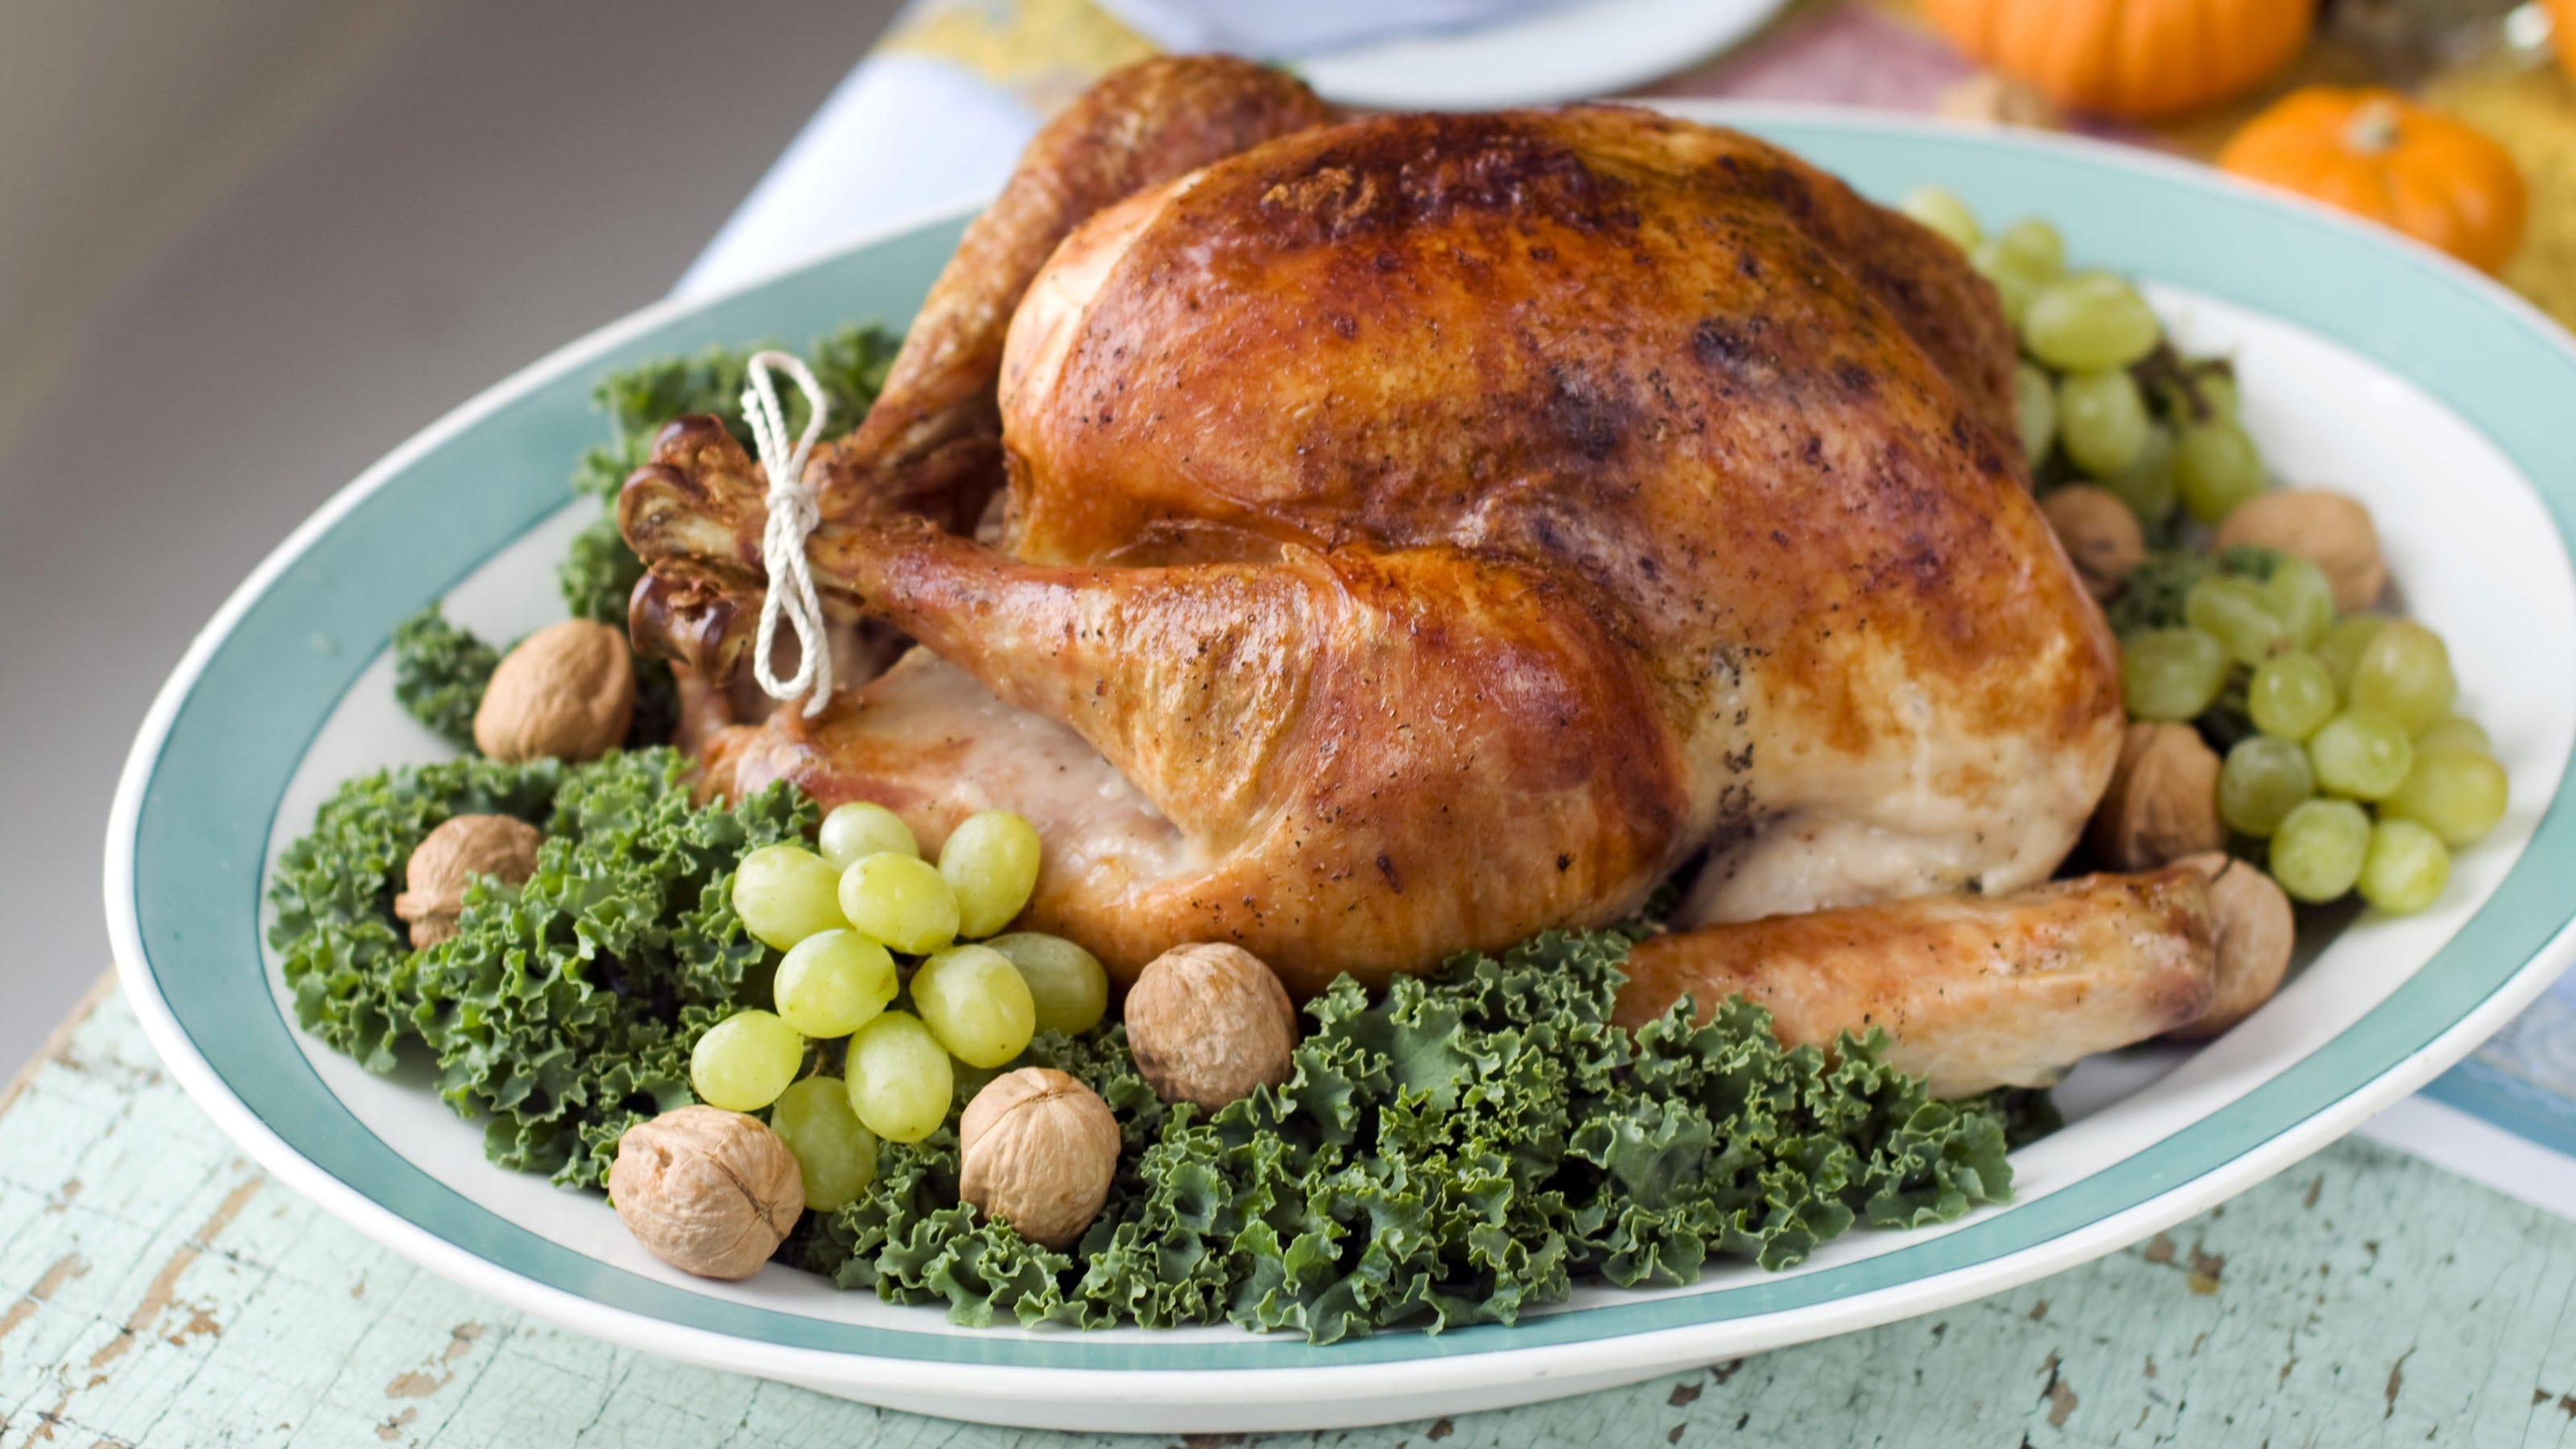 Don 39 t wash your turkey and other food safety tips - Foods never wash cooking ...